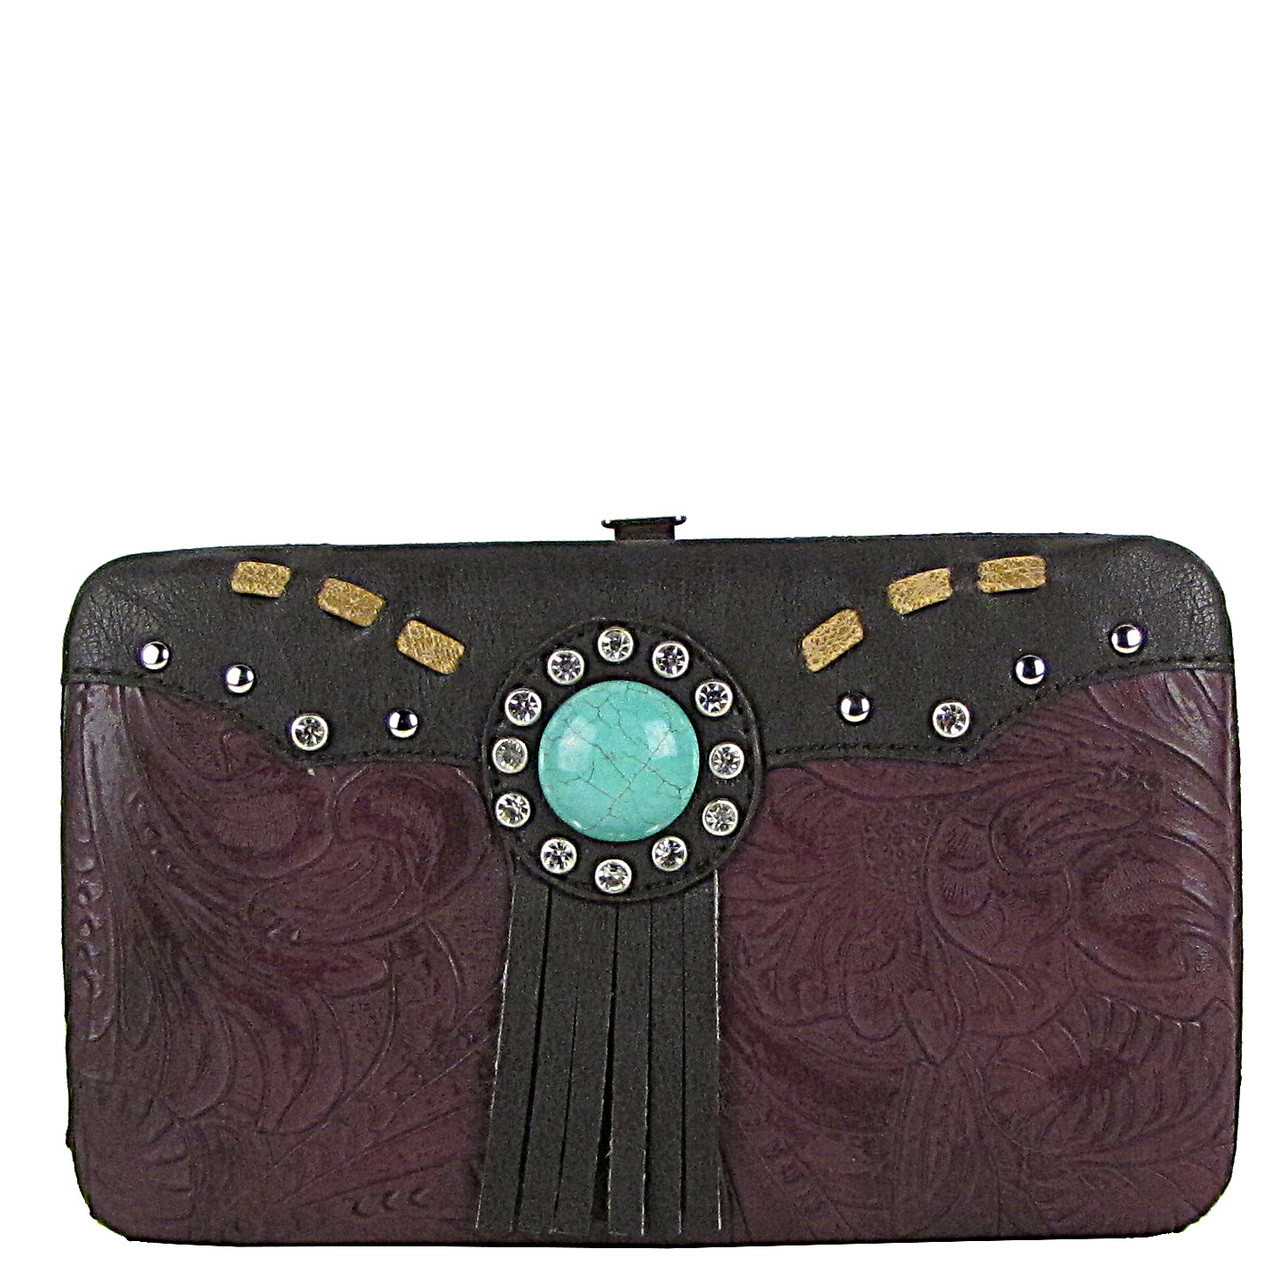 PURPLE WESTERN TOOLED TASSEL LOOK FLAT THICK WALLET FW2-1261PPL